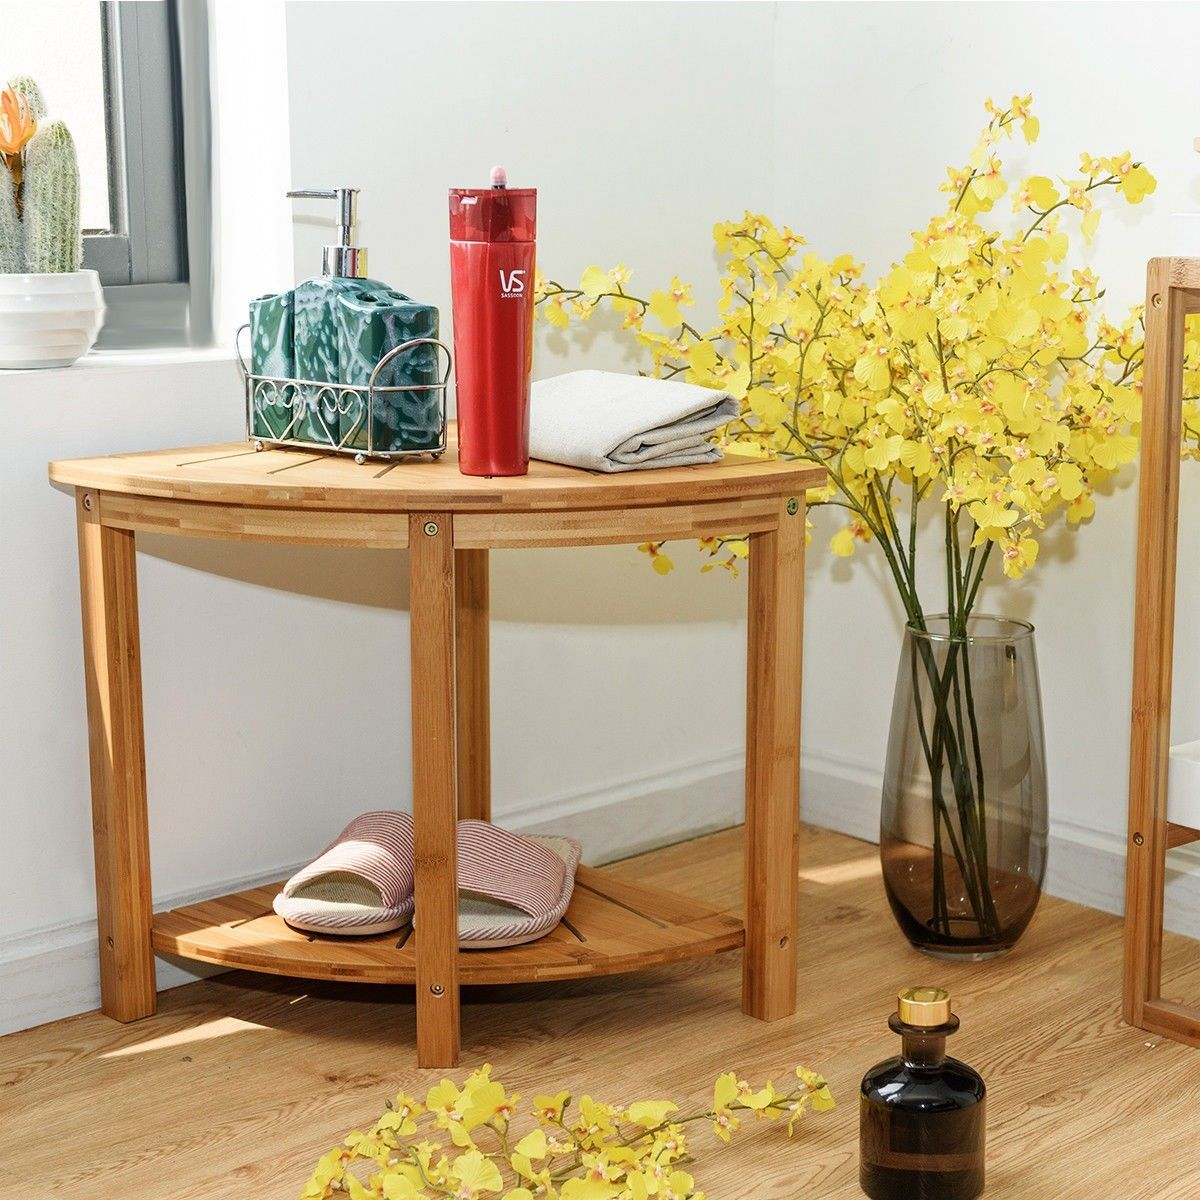 Corner Shower Bench Bamboo Spa Seat With Storage Shelf Health